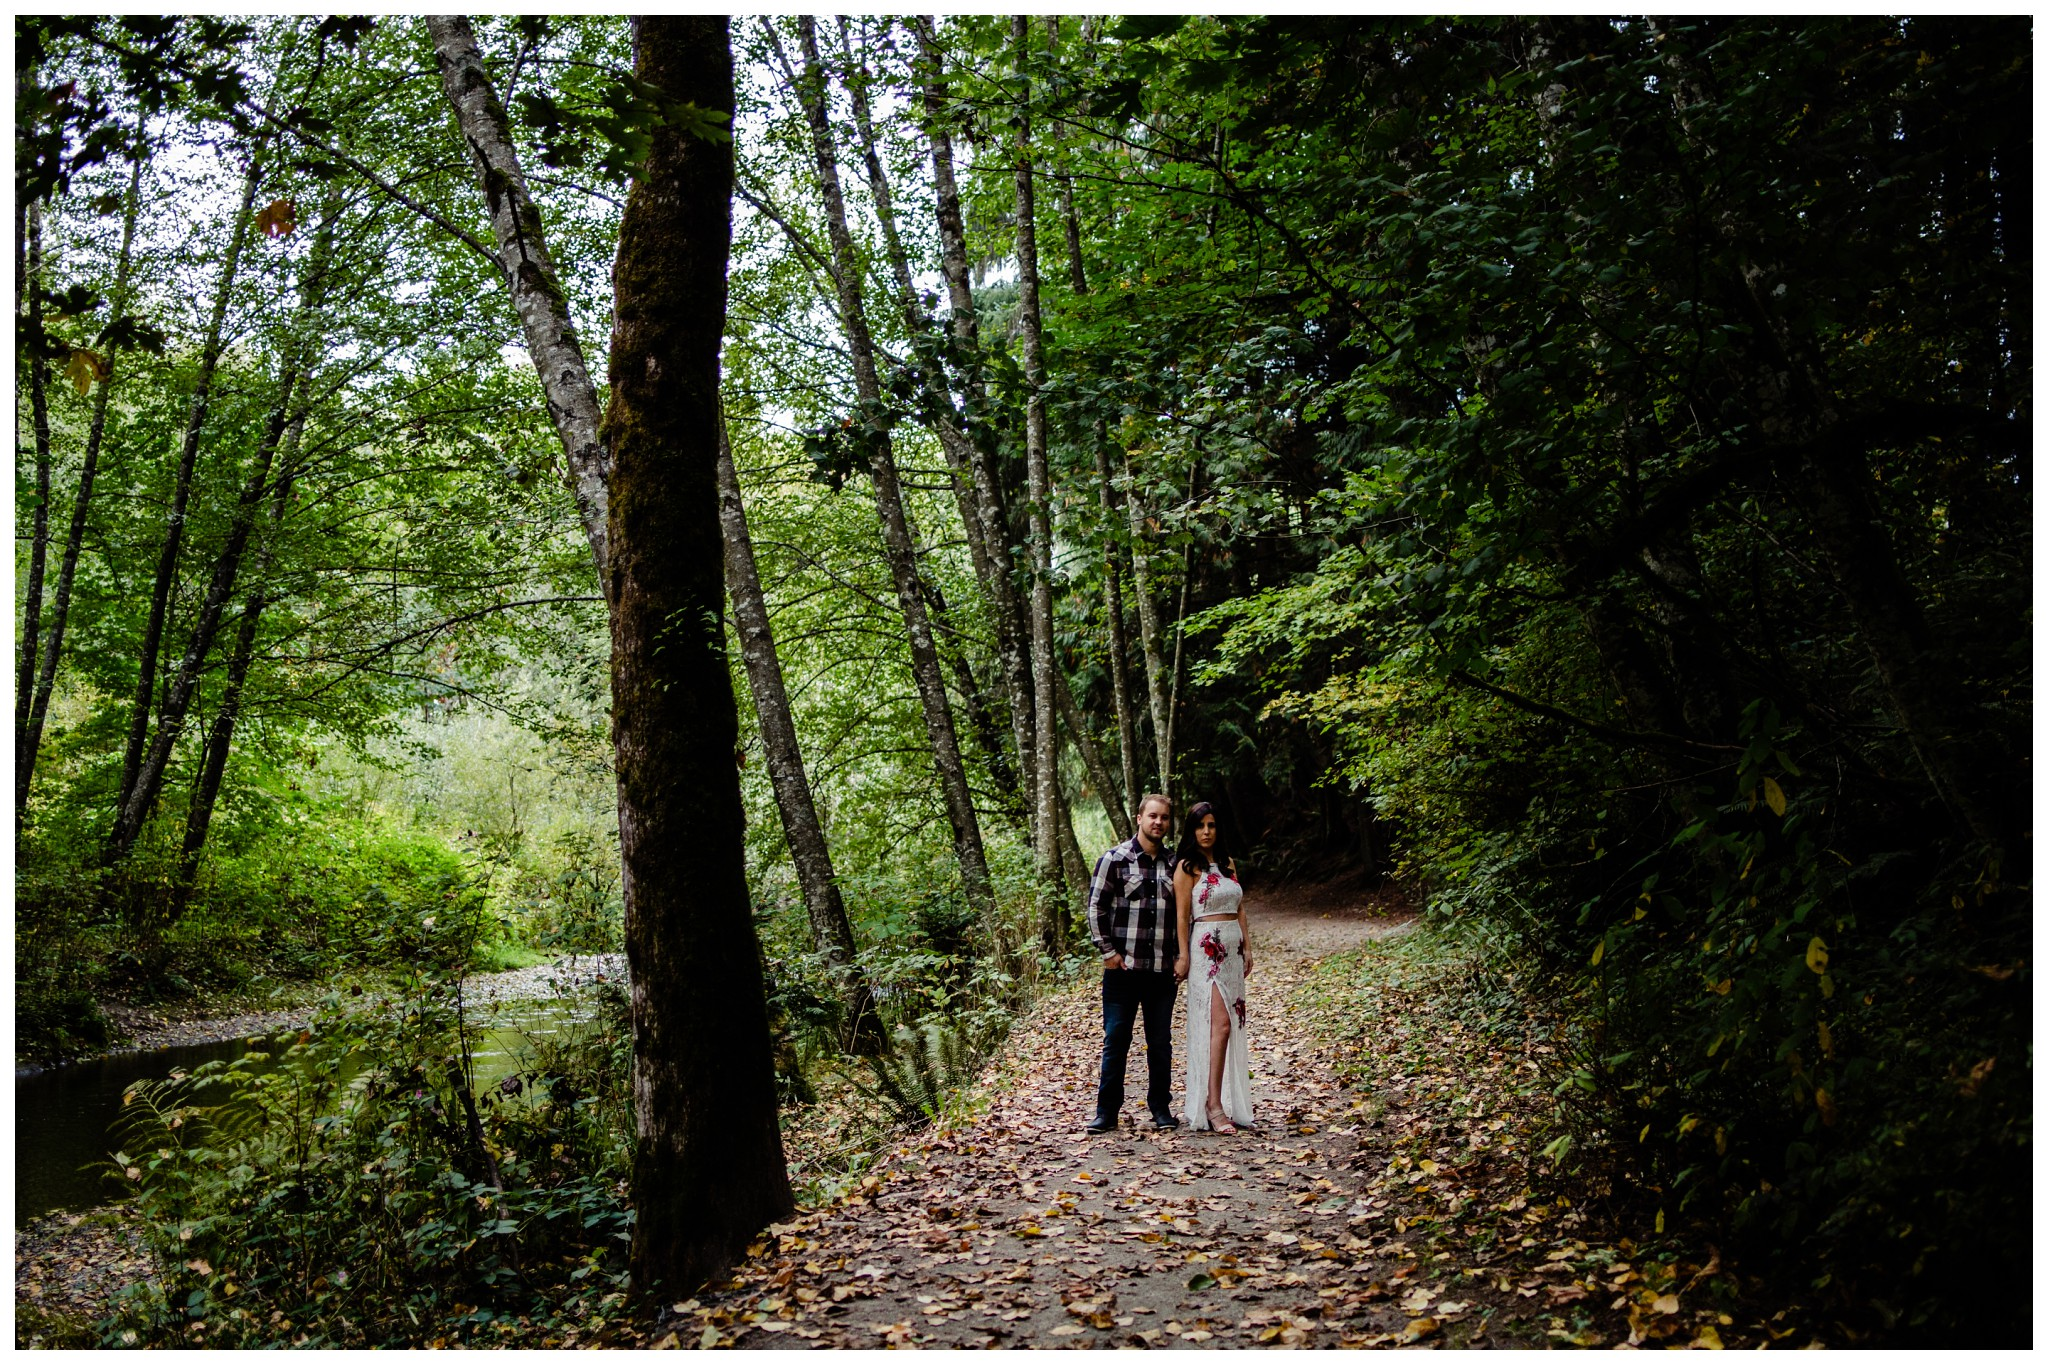 Williams Park Aldergrove Engagement Photographer Moody Fall Couple River Water Romantic Pose Yellow Leaves White Dress Dark_0013.jpg